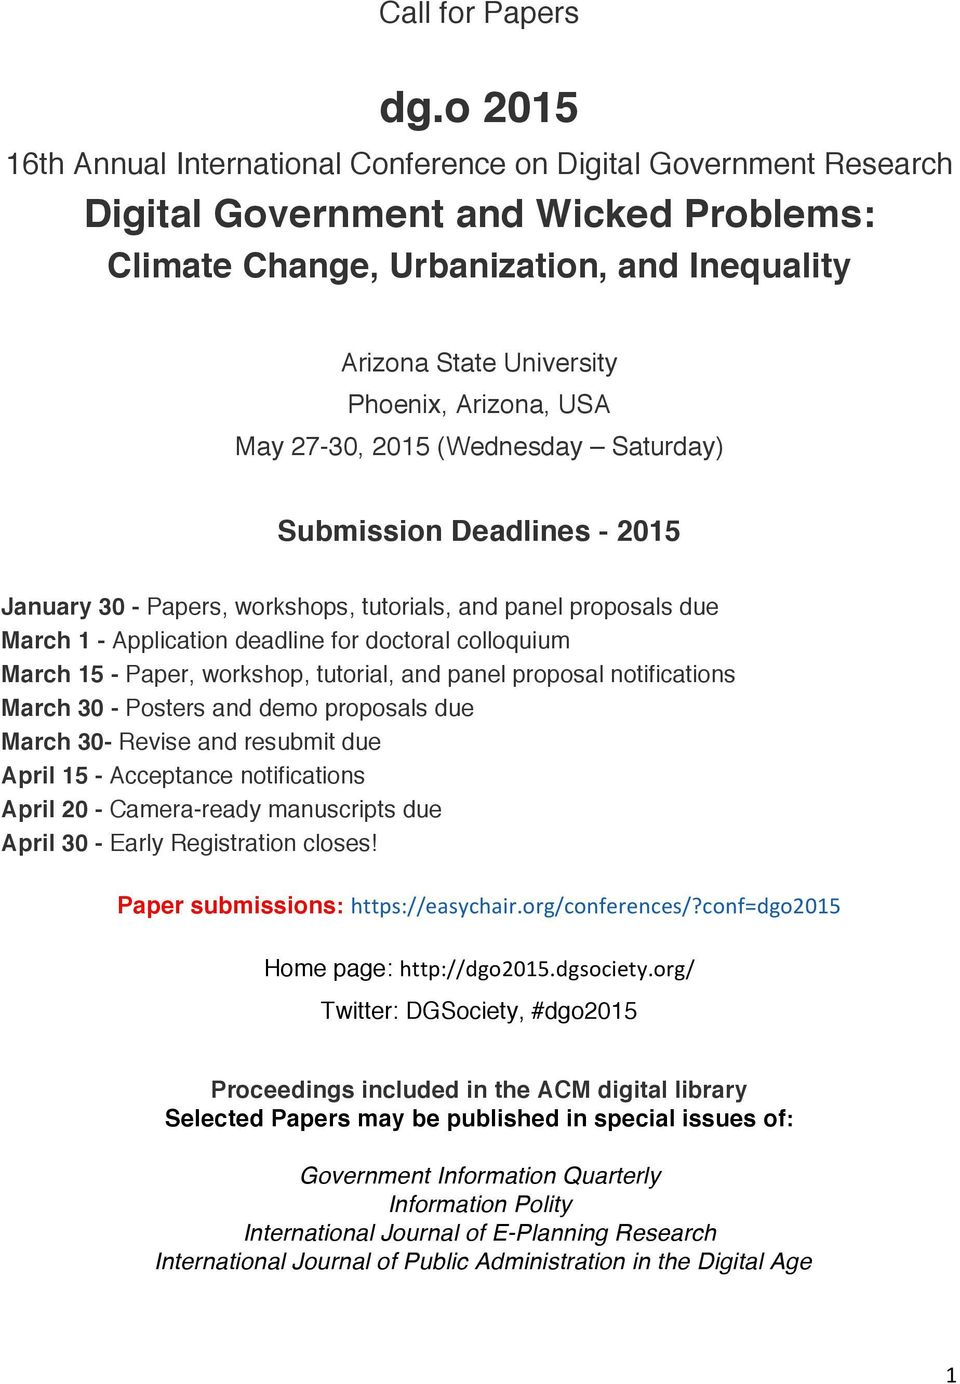 Arizona, USA May 27-30, 2015 (Wednesday Saturday) Submission Deadlines - 2015 January 30 - Papers, workshops, tutorials, and panel proposals due March 1 - Application deadline for doctoral colloquium